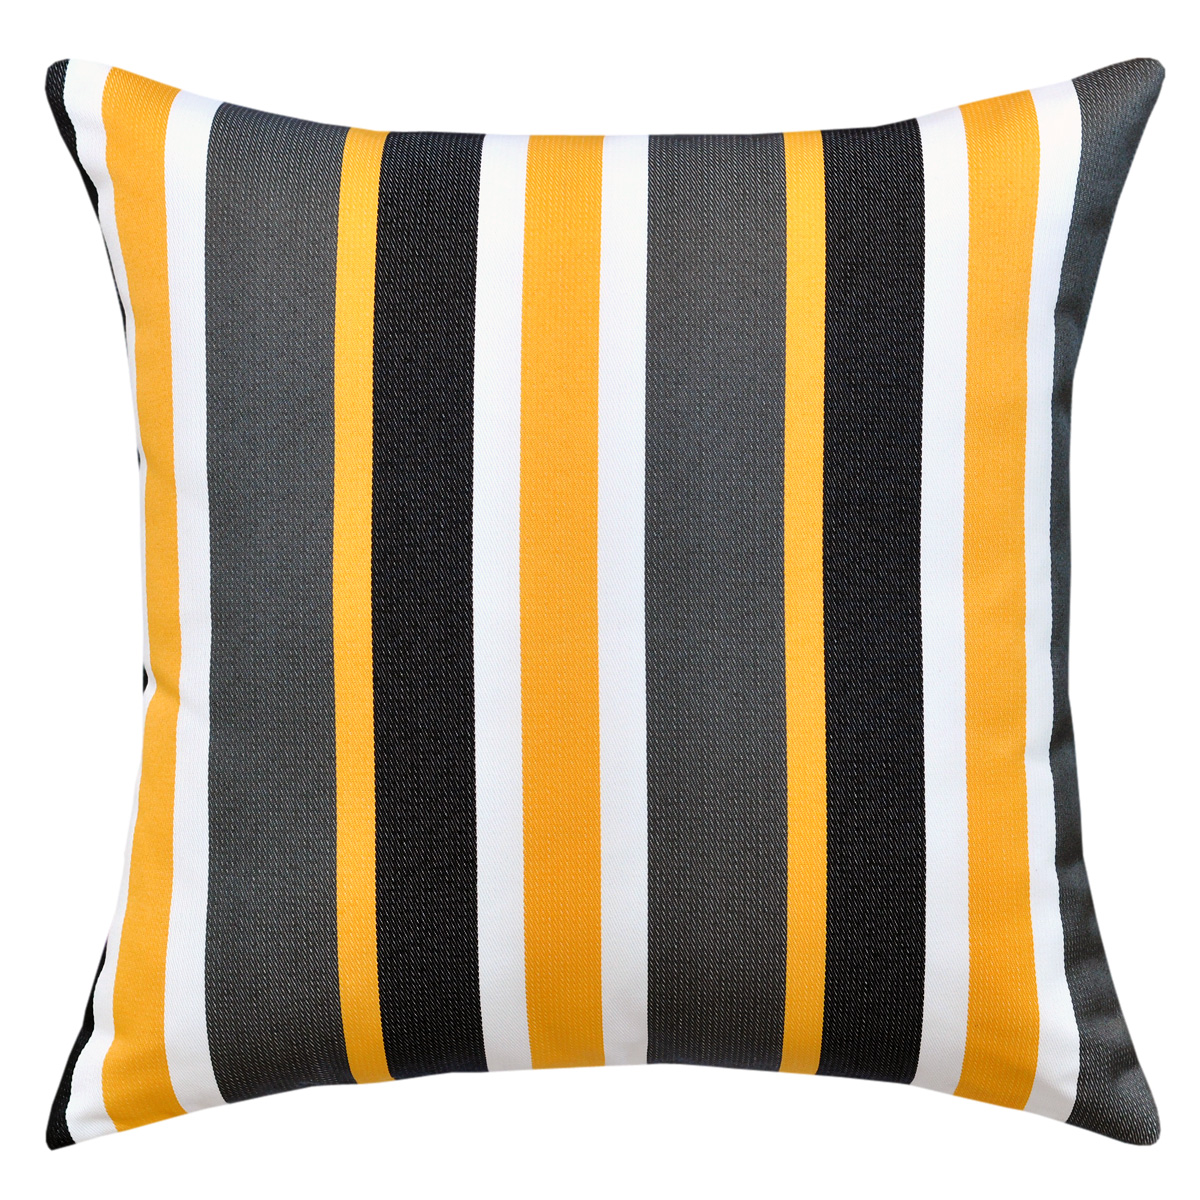 Mindill Sunshine Outdoor Cushion - 45x45cm